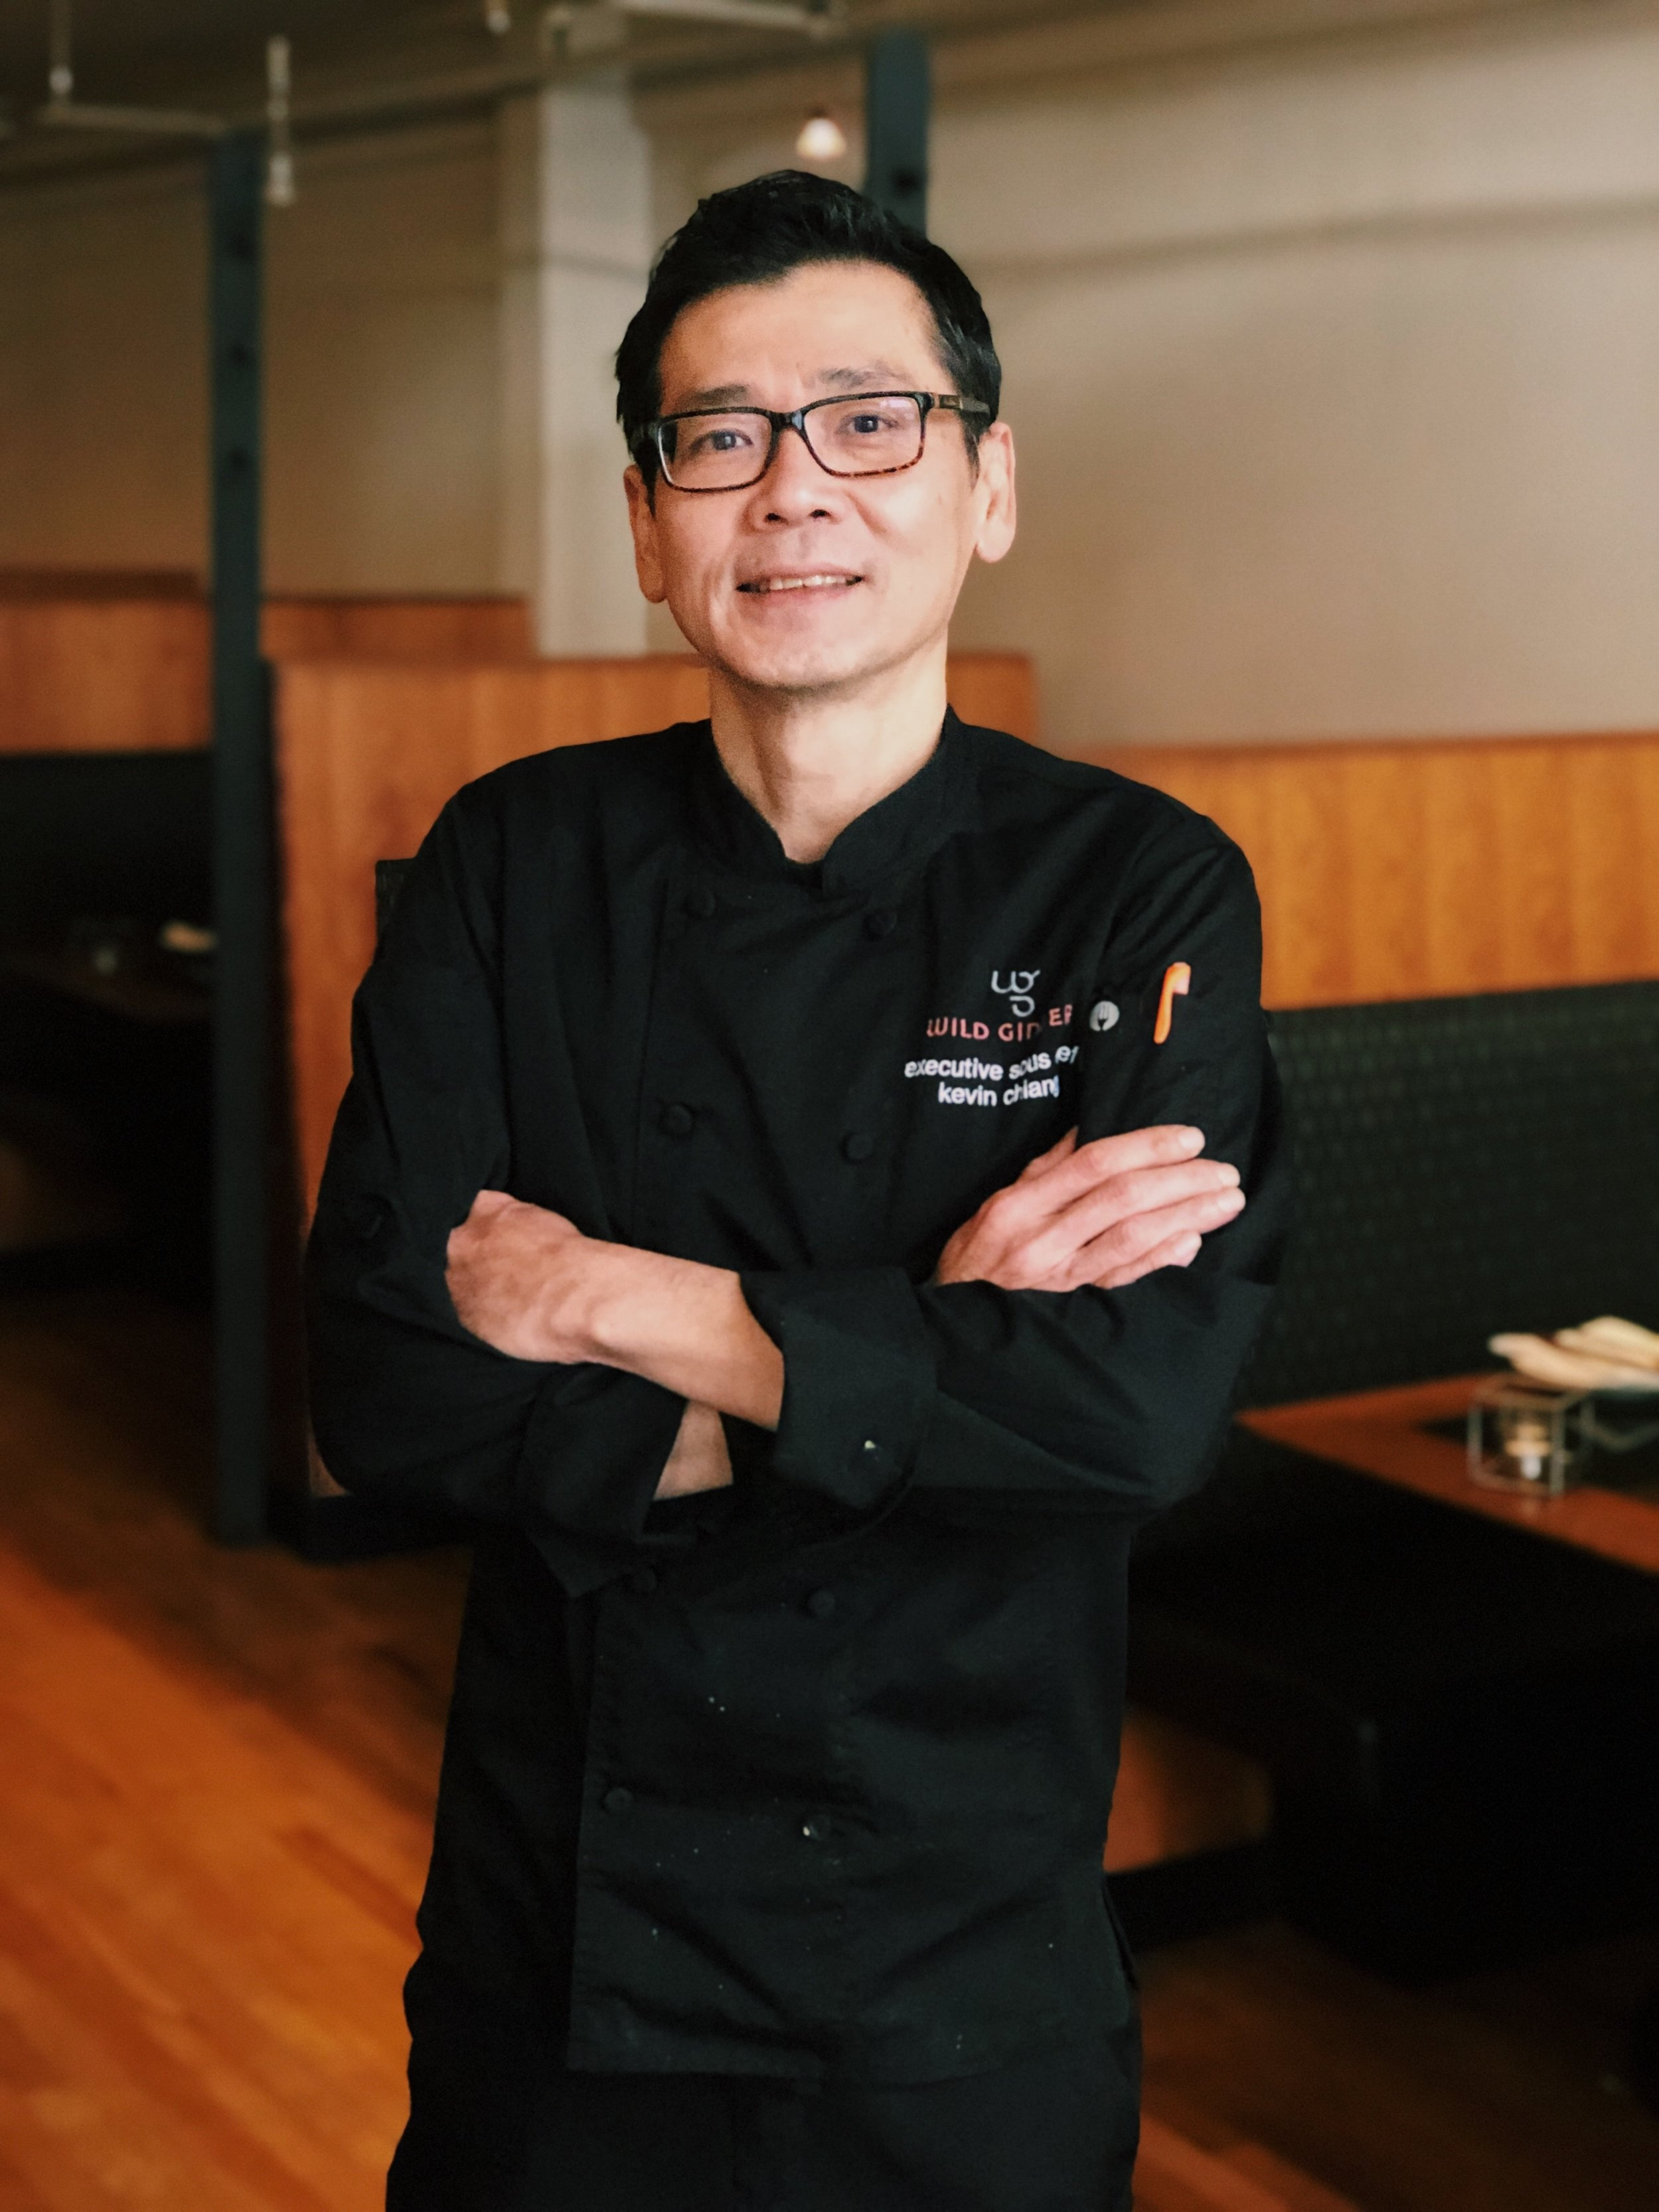 Kevin Chiang - Executive ChefWhen did you start with the company? 2018What's the best part of your job? Elevating my teammate's potential.What's your favorite thing about Seattle?It's closeness to Vancouver, Canada!What's the best piece of advice given to you that you want to share with others? Respecting your teammates. Passion and persistence in giving the best possible experience for our guests.